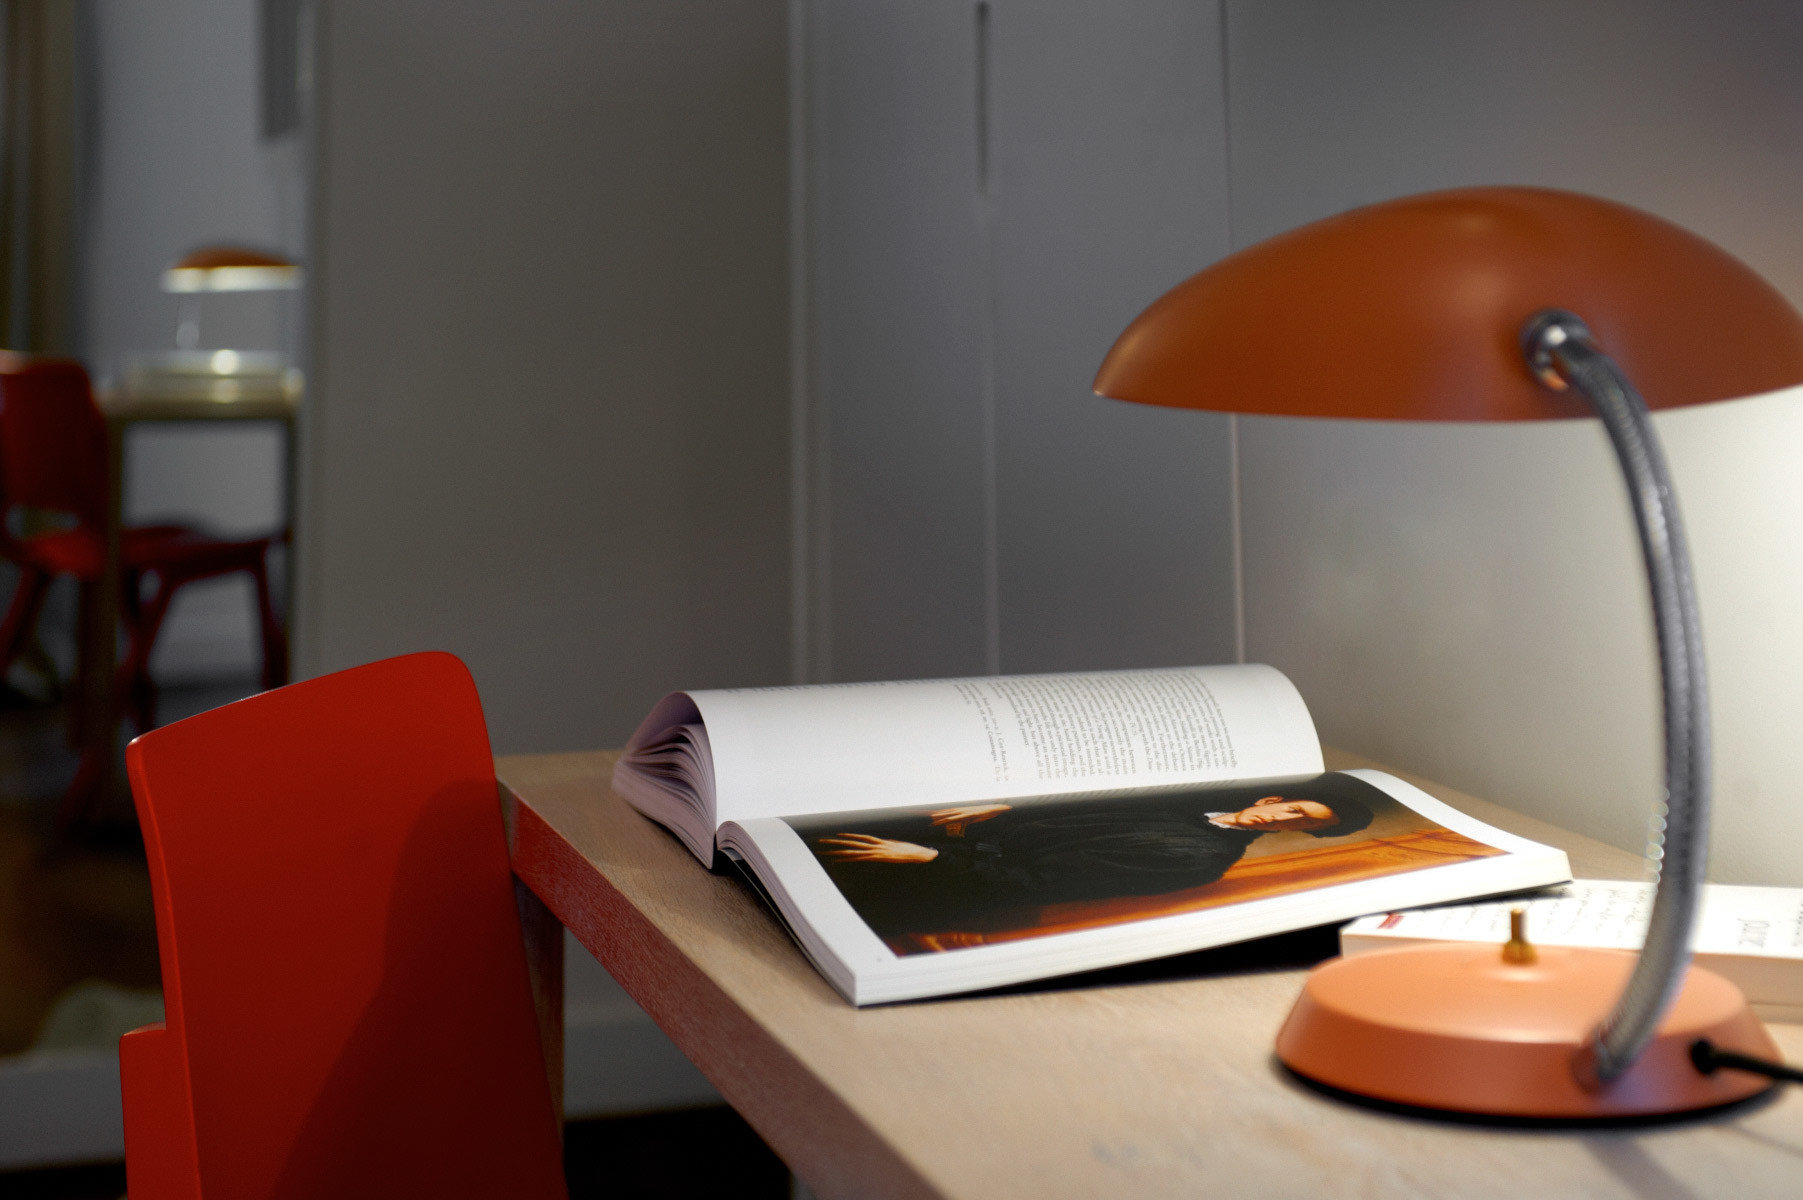 Business City Hip Modern desk office orange lamp